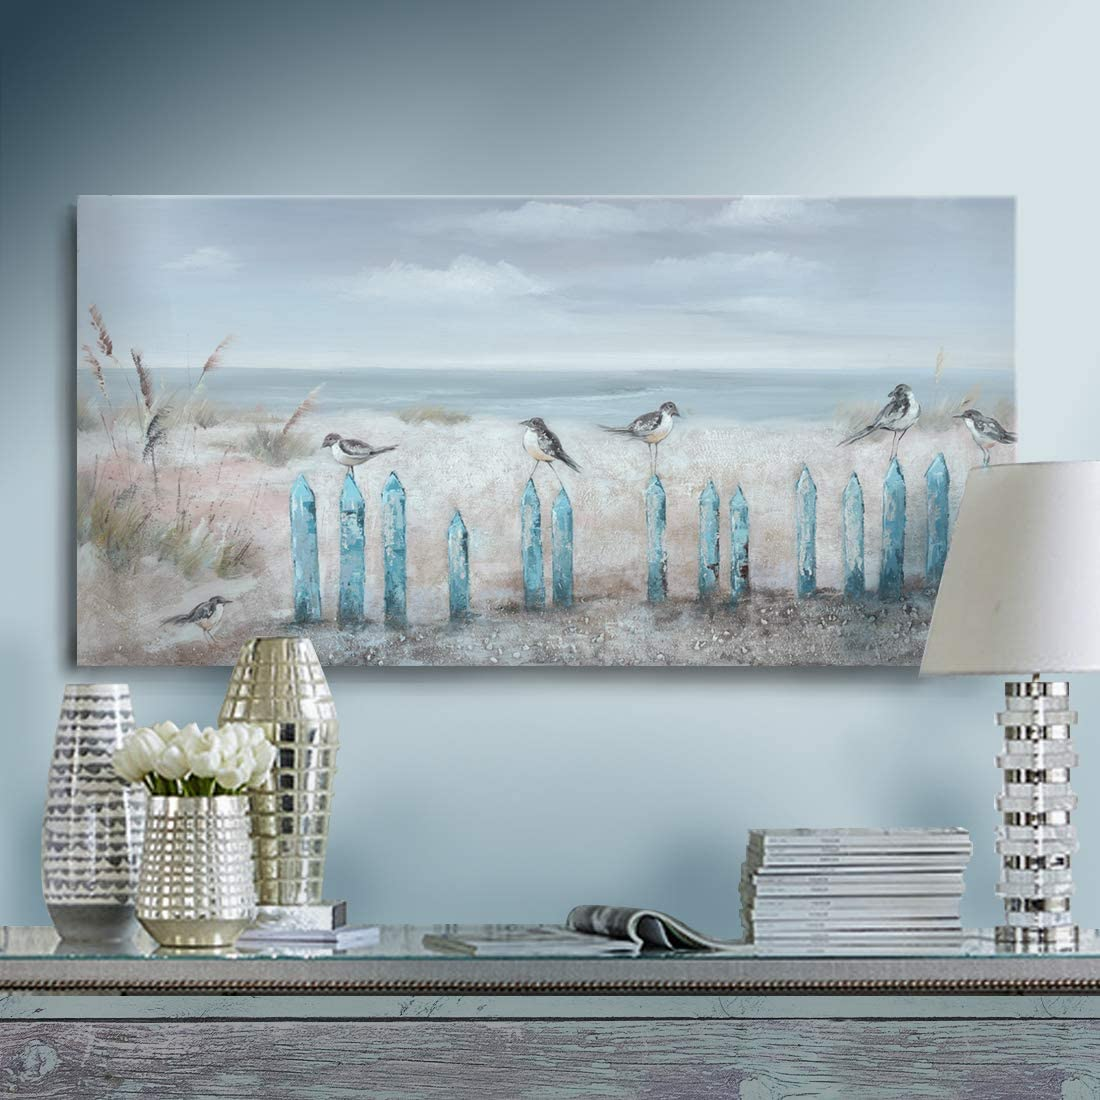 Ocean Beach Wall Art 3D Framed Hand-Painted Seascape Oil Painting Perching Bird Canvas Artwork 'The Tranquility by The Sea Shore' for Living Room Bedroom Décor Coastal Blue 16x32inch